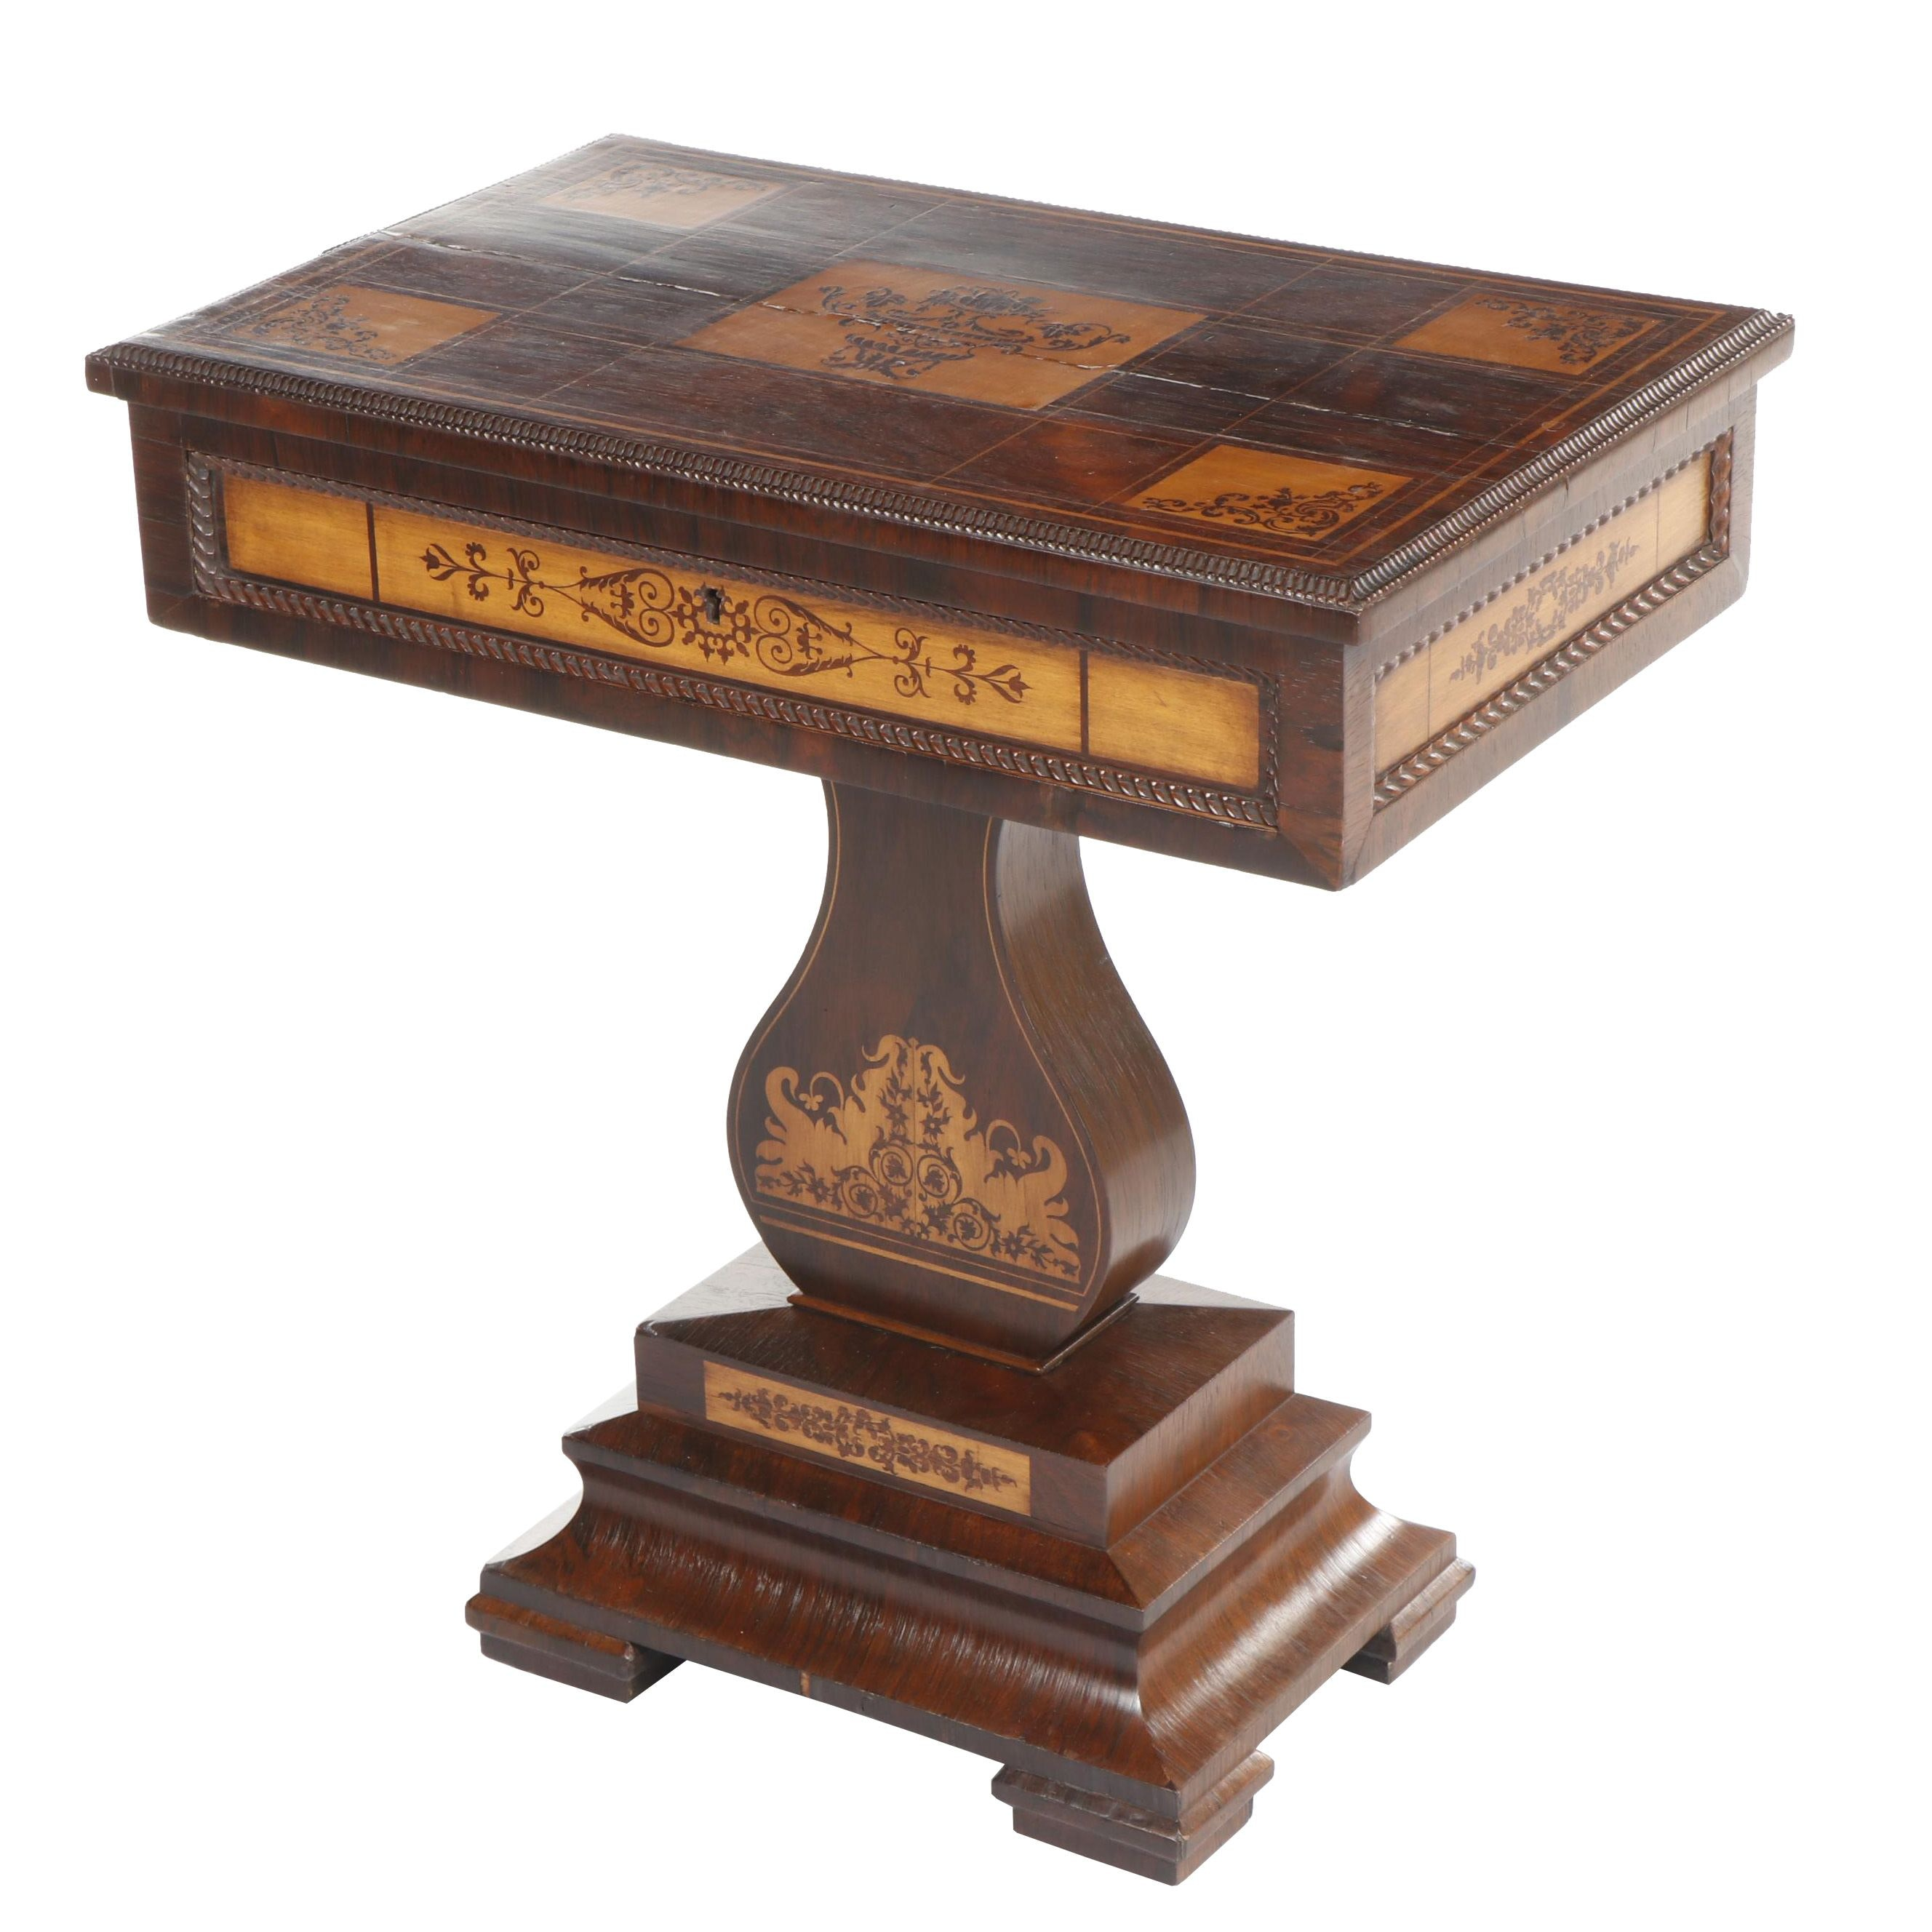 William IV Rosewood, Stencil Decorated and Parcel Gilt Work Table, Circa 1840